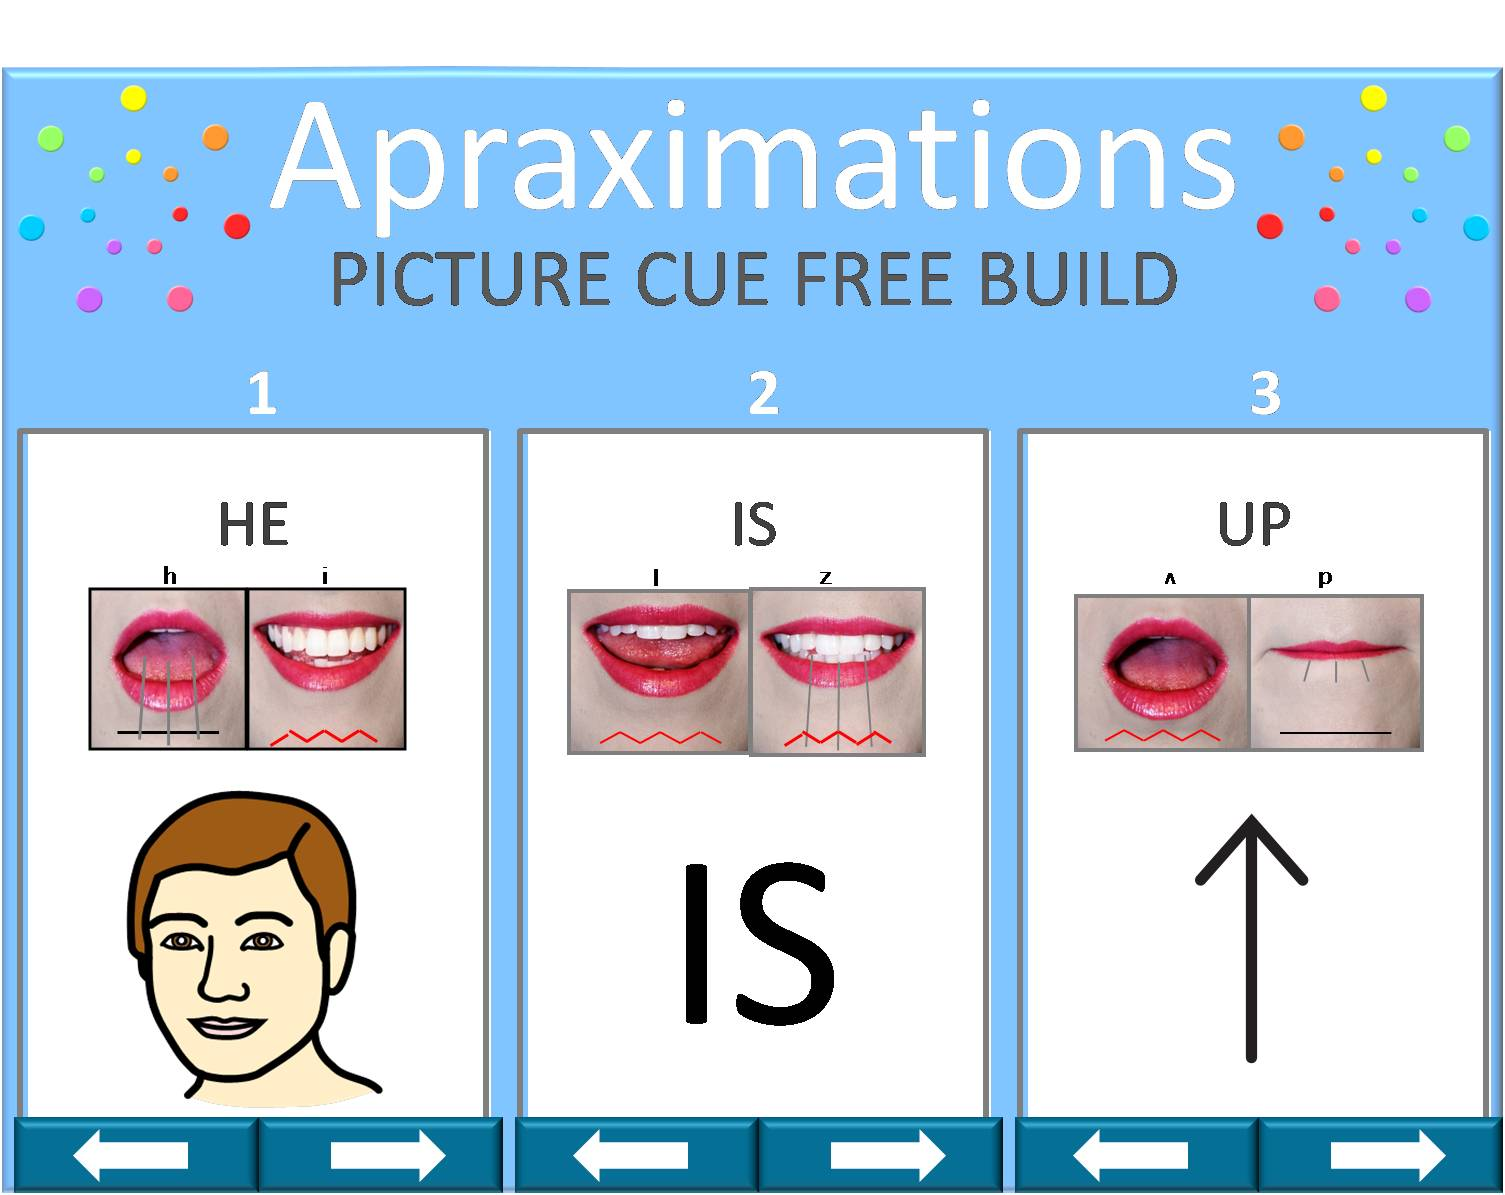 apraximations pic12